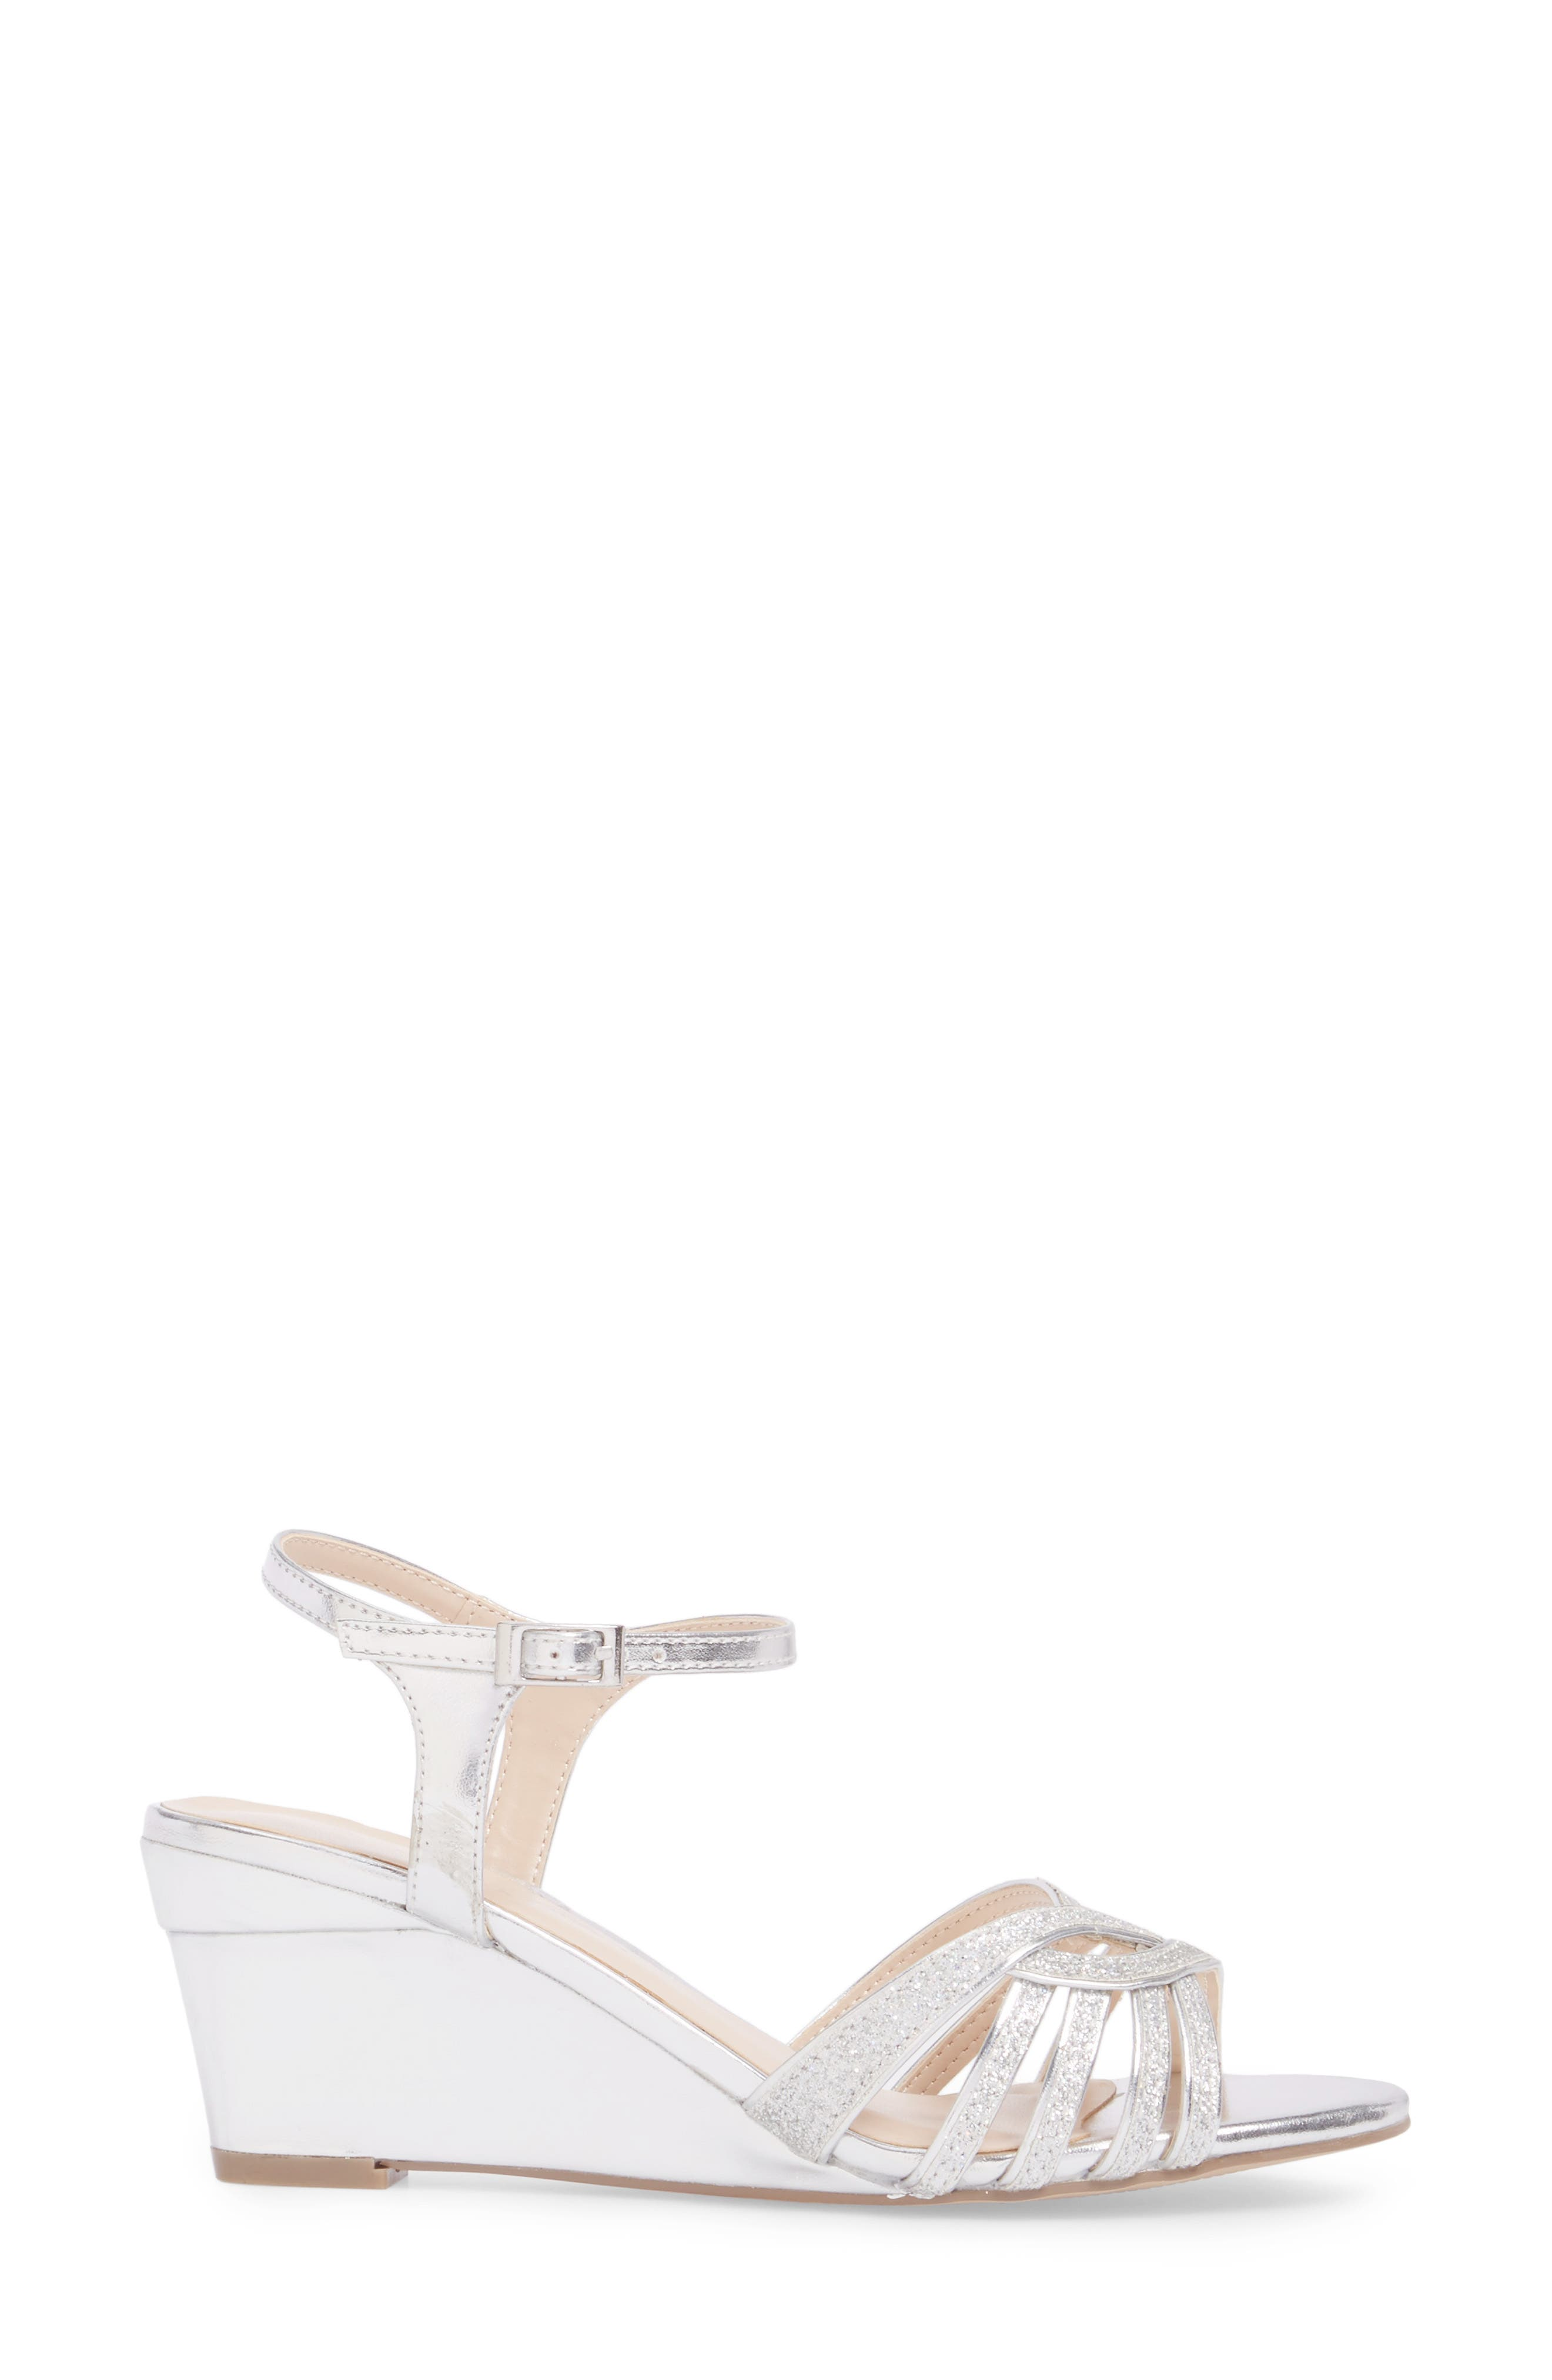 PARADOX LONDON PINK,                             Karianne Wedge Sandal,                             Alternate thumbnail 3, color,                             040